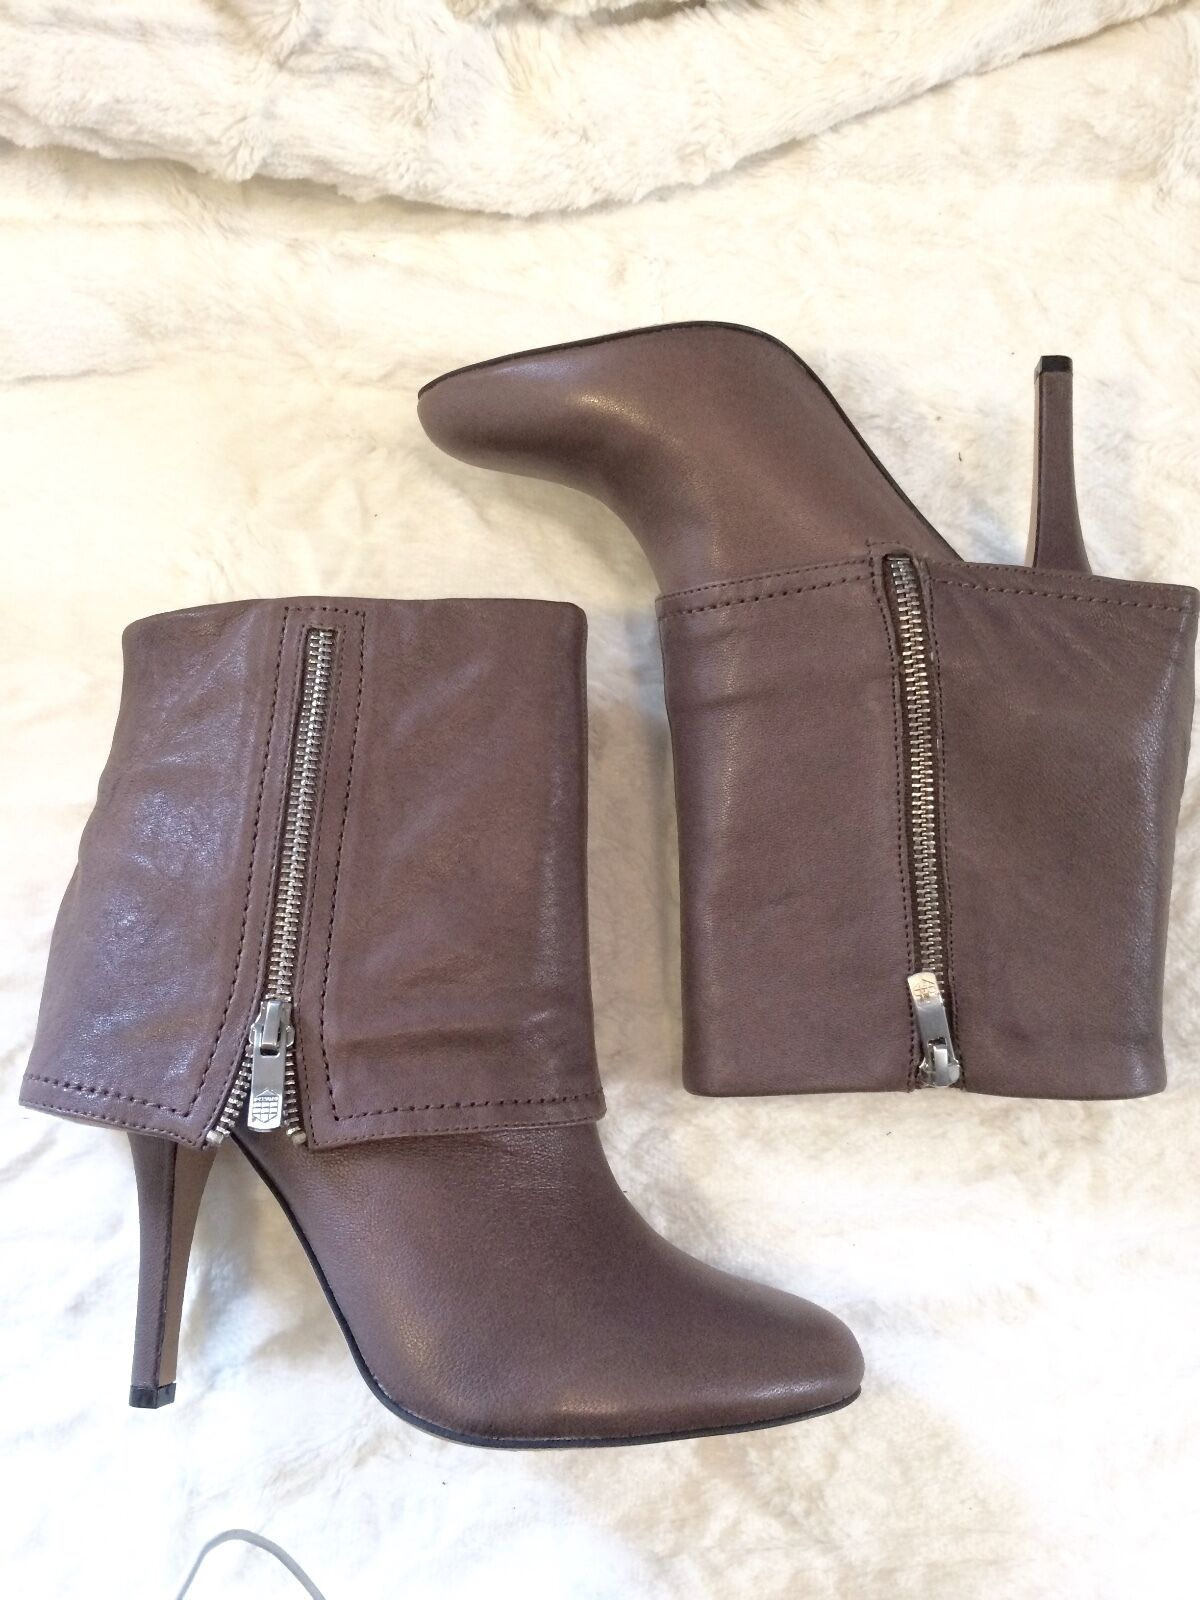 Vince Camuto Braun Leder Stiefel with 4in Heel, Round toe, and Zipper Closure.